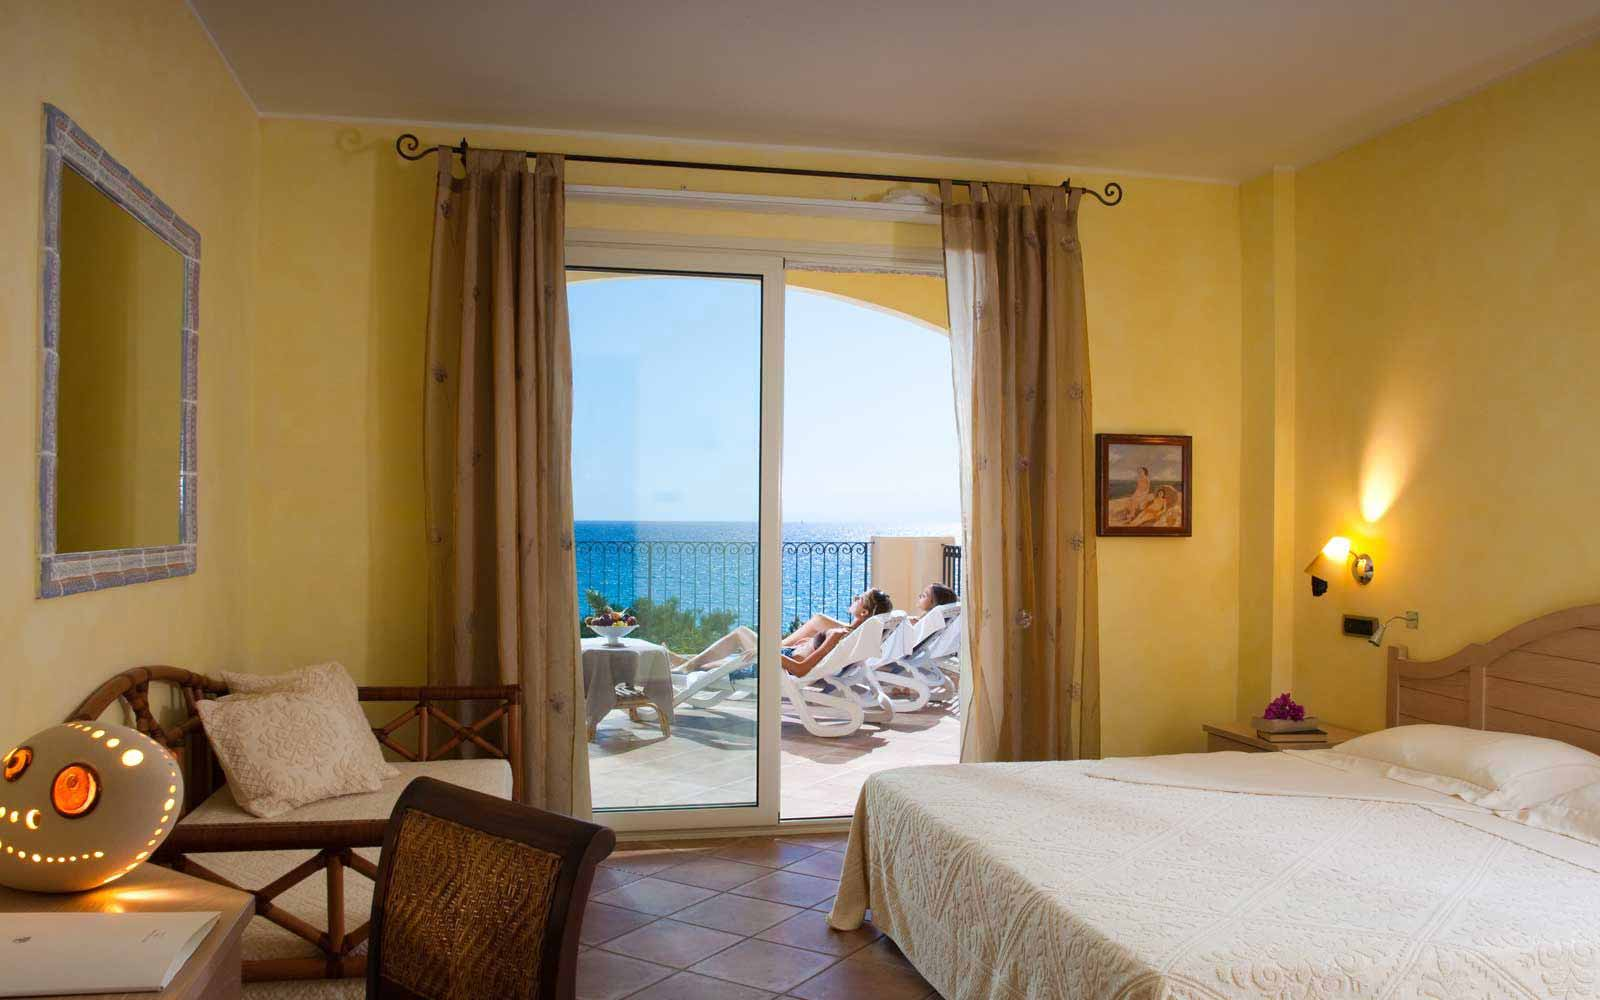 Deluxe room with seaview at Hotel Stella Maris